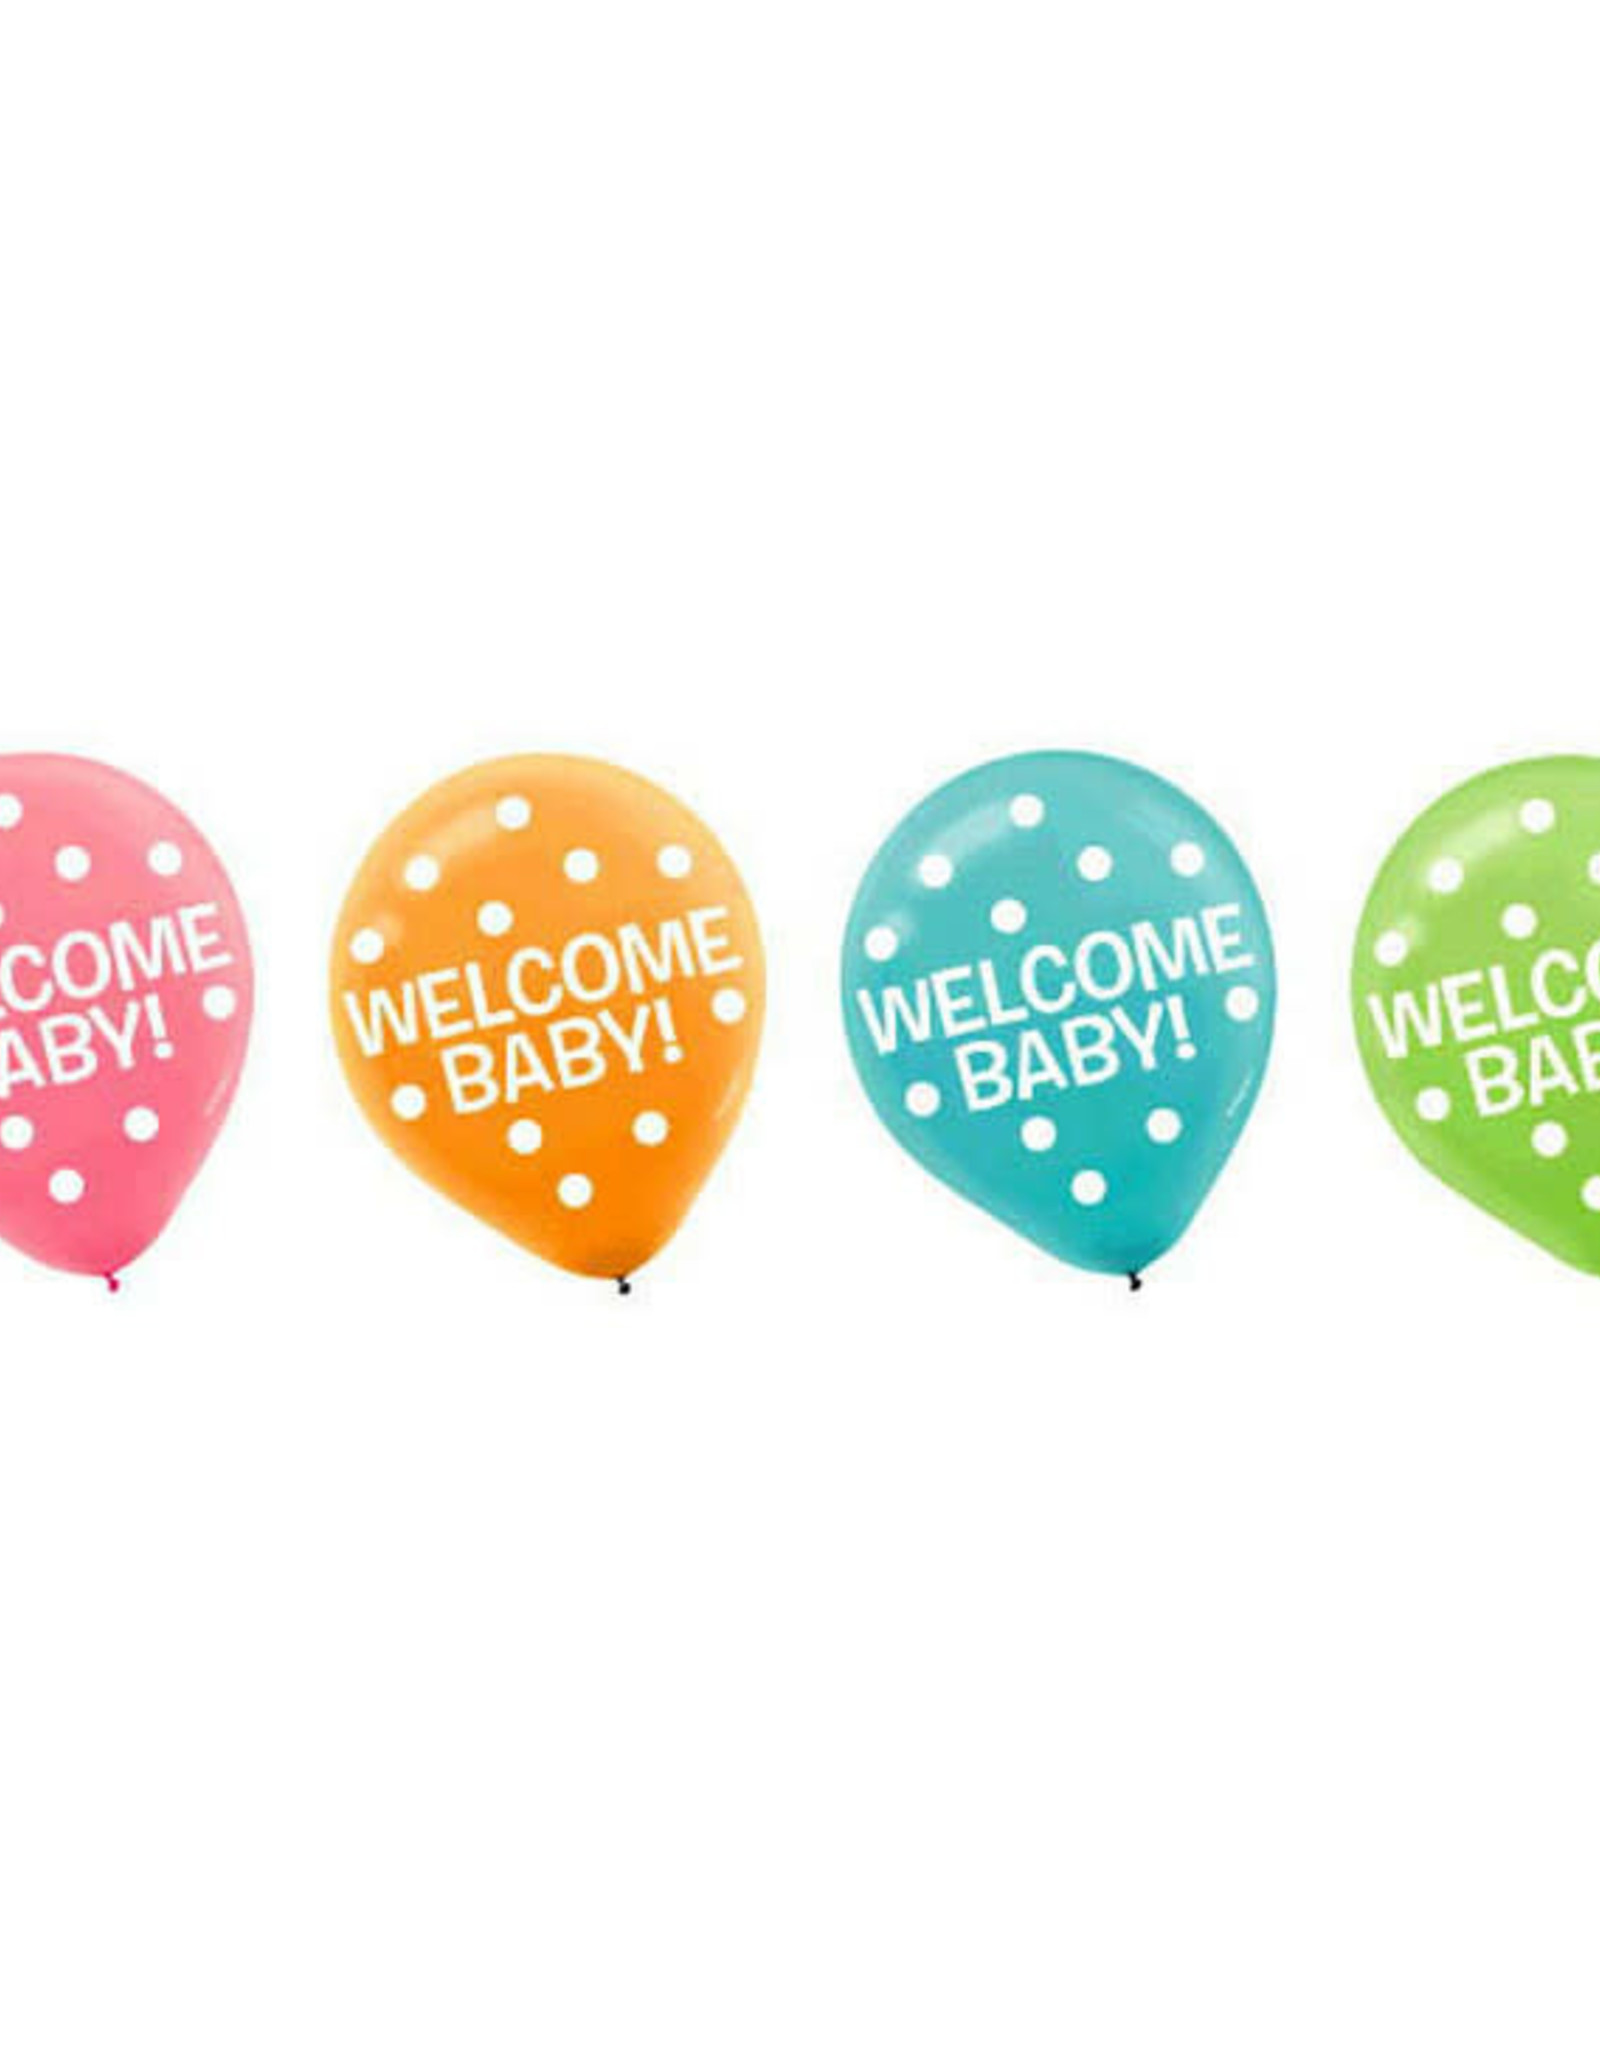 Welcome Baby Latex Balloons